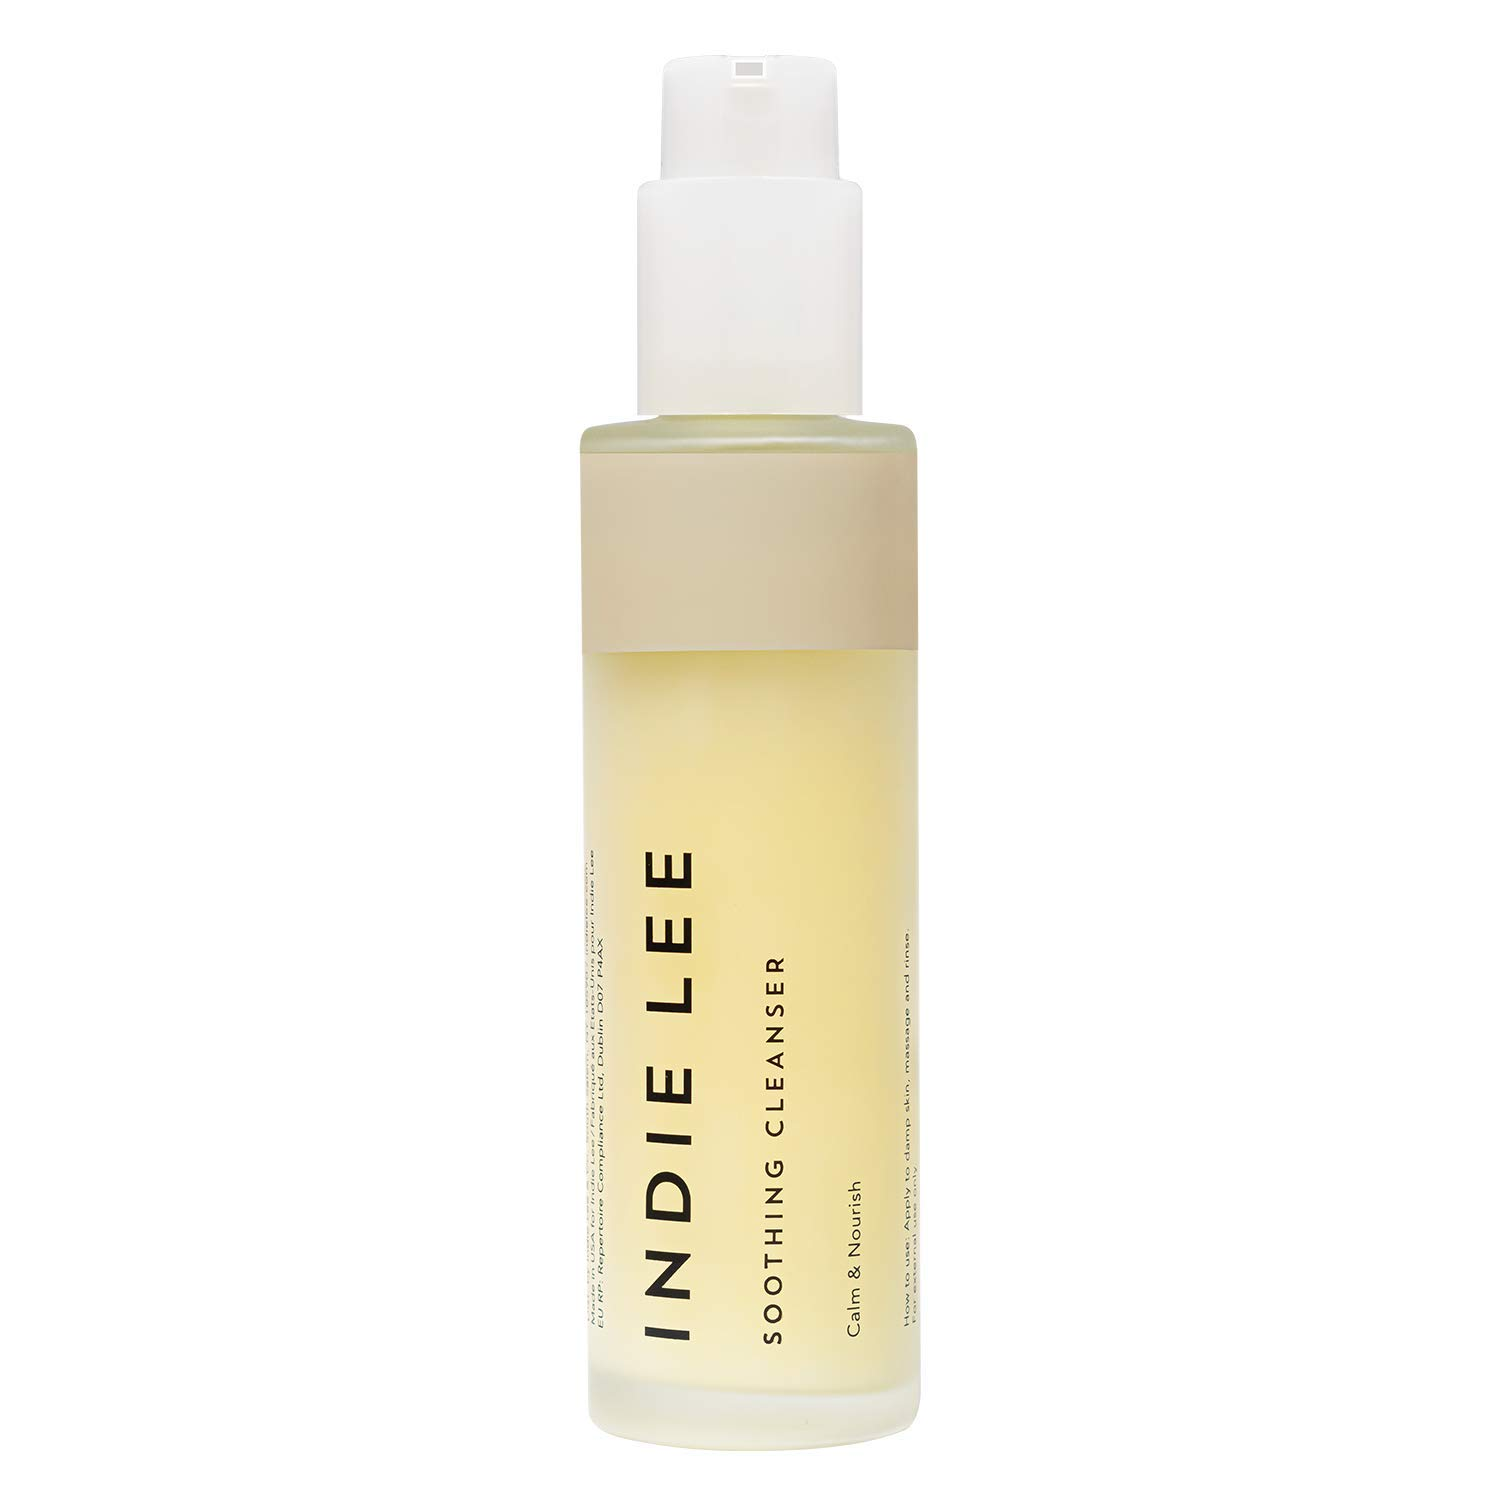 Indie Lee Soothing Cleanser - Gentle Moisturizing Face Wash with Rose Damascena Oil to Help Plump, Hydrate + Calm Redness - Great for Sensitive Skin + All Complexion Types (4.2oz / 125ml)